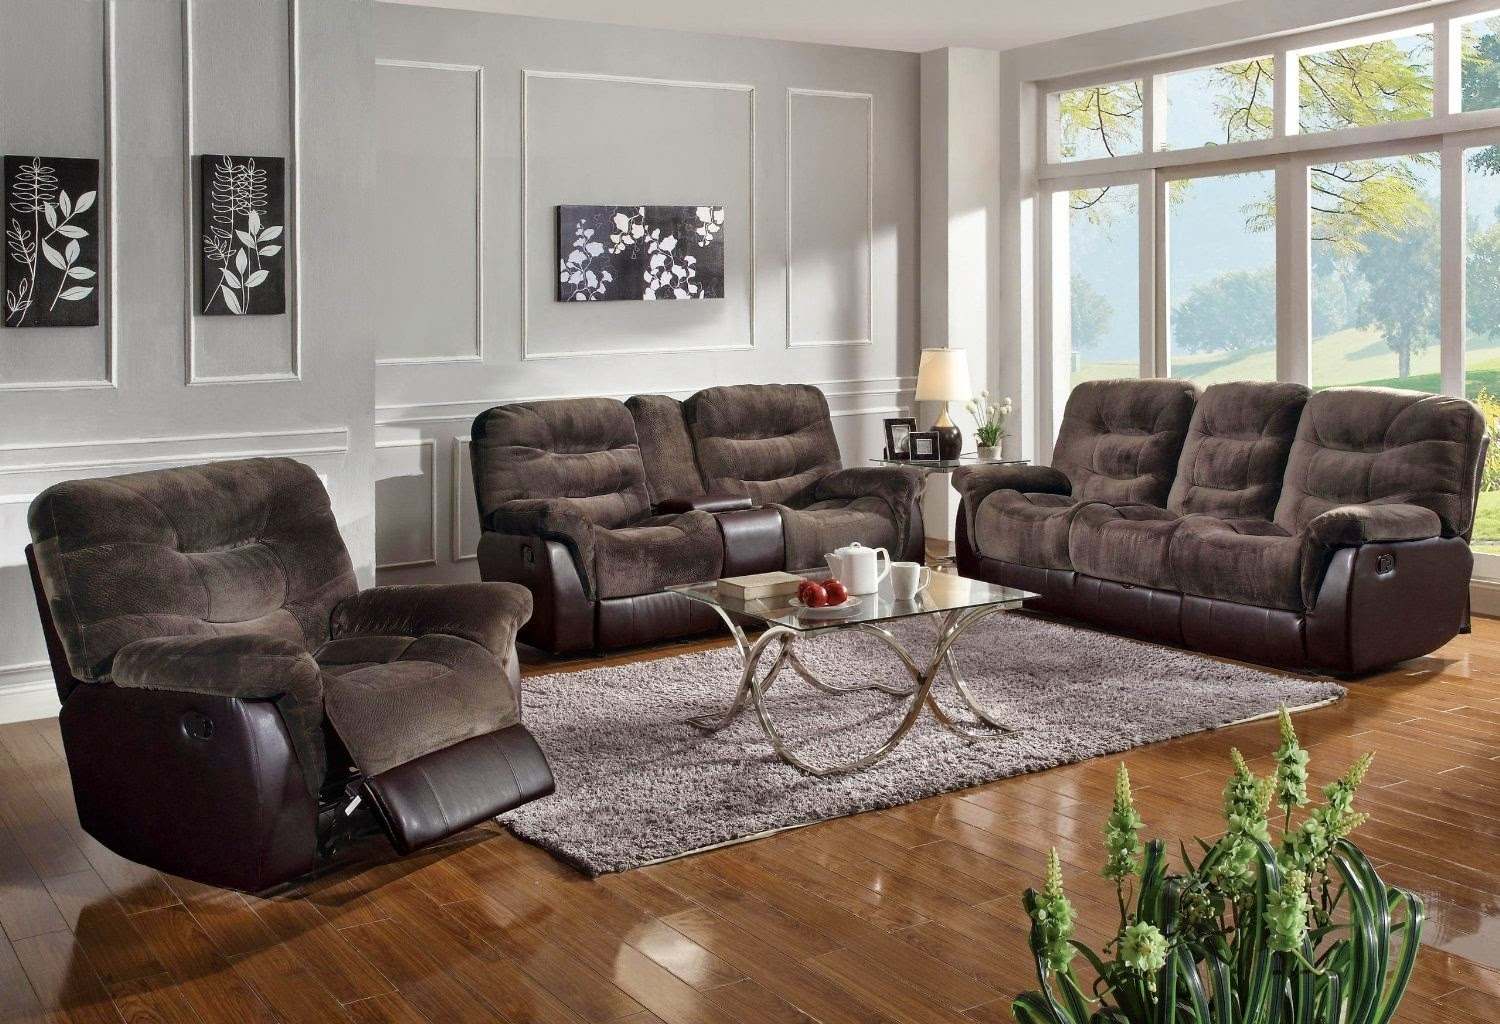 Sectional Reclining Sofa Sale: Reclining Sofa Sectionals For Small inside Jackson 6 Piece Power Reclining Sectionals With  Sleeper (Image 20 of 30)